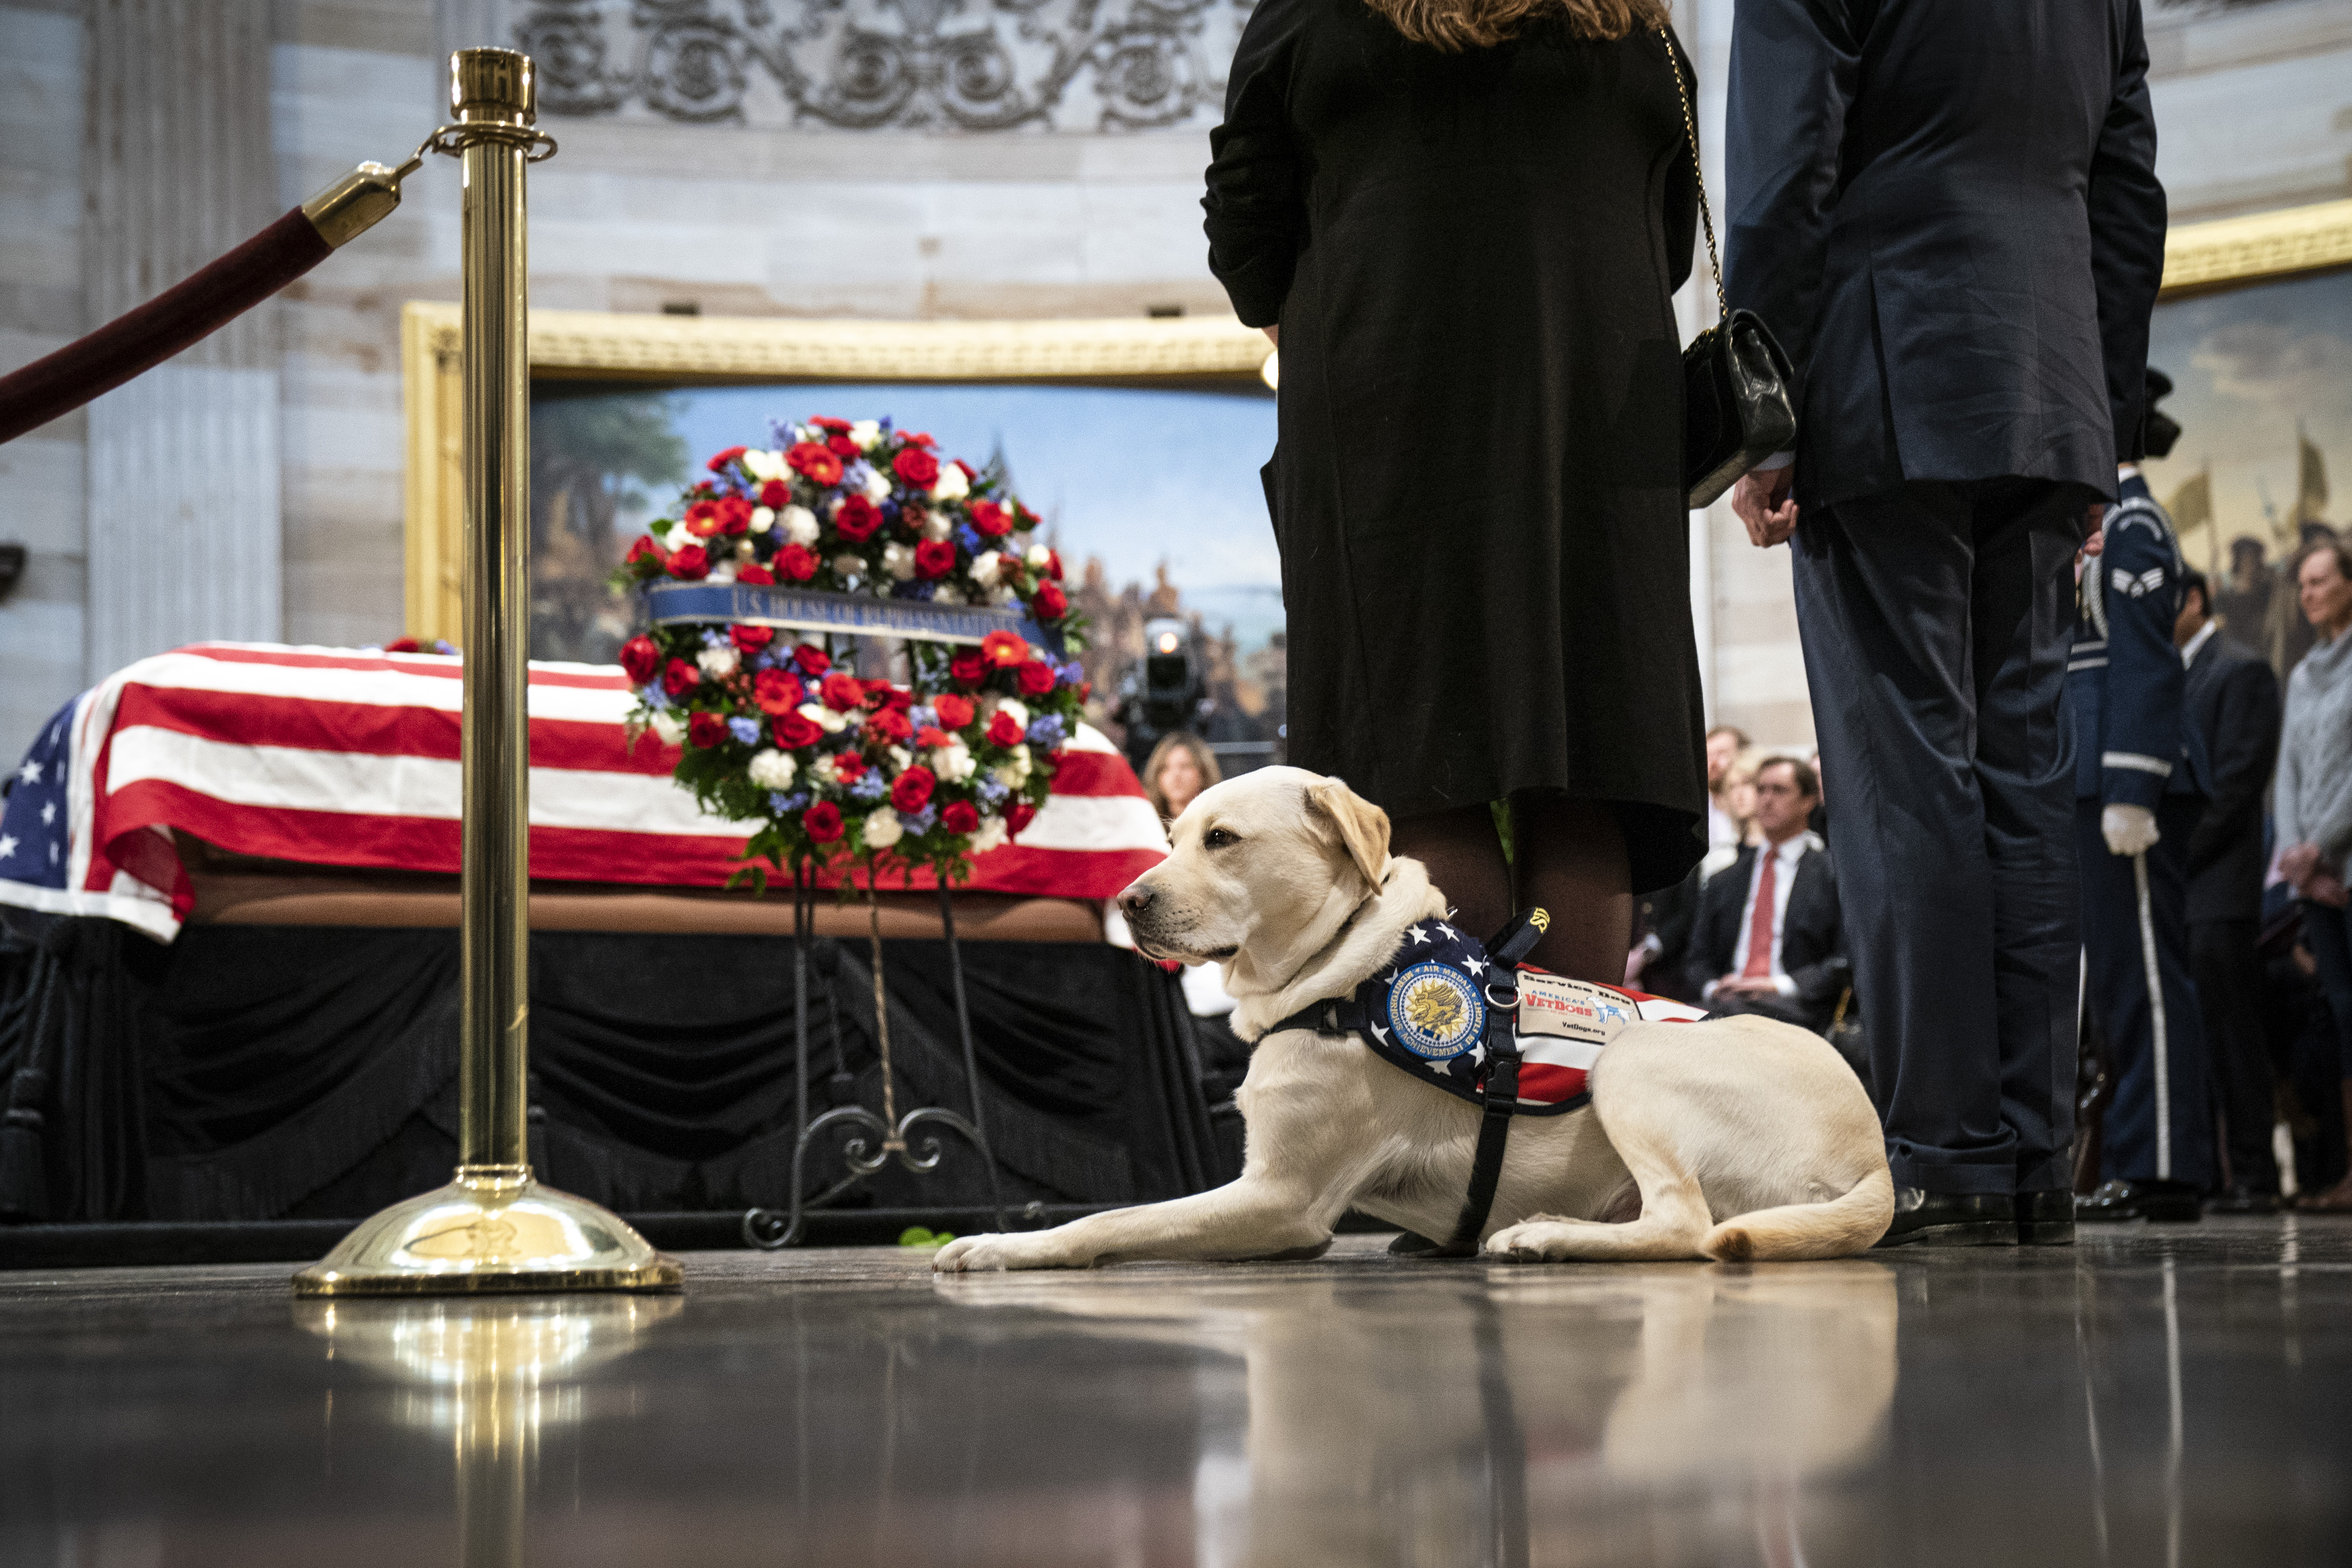 Sully, a yellow Labrador service dog for former President George H. W. Bush, sits near the casket of the late former President George H.W. Bush as he lies in state at the U.S. Capitol, December 4, 2018 in Washington, DC. A WWII combat veteran, Bush served as a member of Congress from Texas, ambassador to the United Nations, director of the CIA, vice president and 41st president of the United States. Bush will lie in state in the U.S. Capitol Rotunda until Wednesday morning.